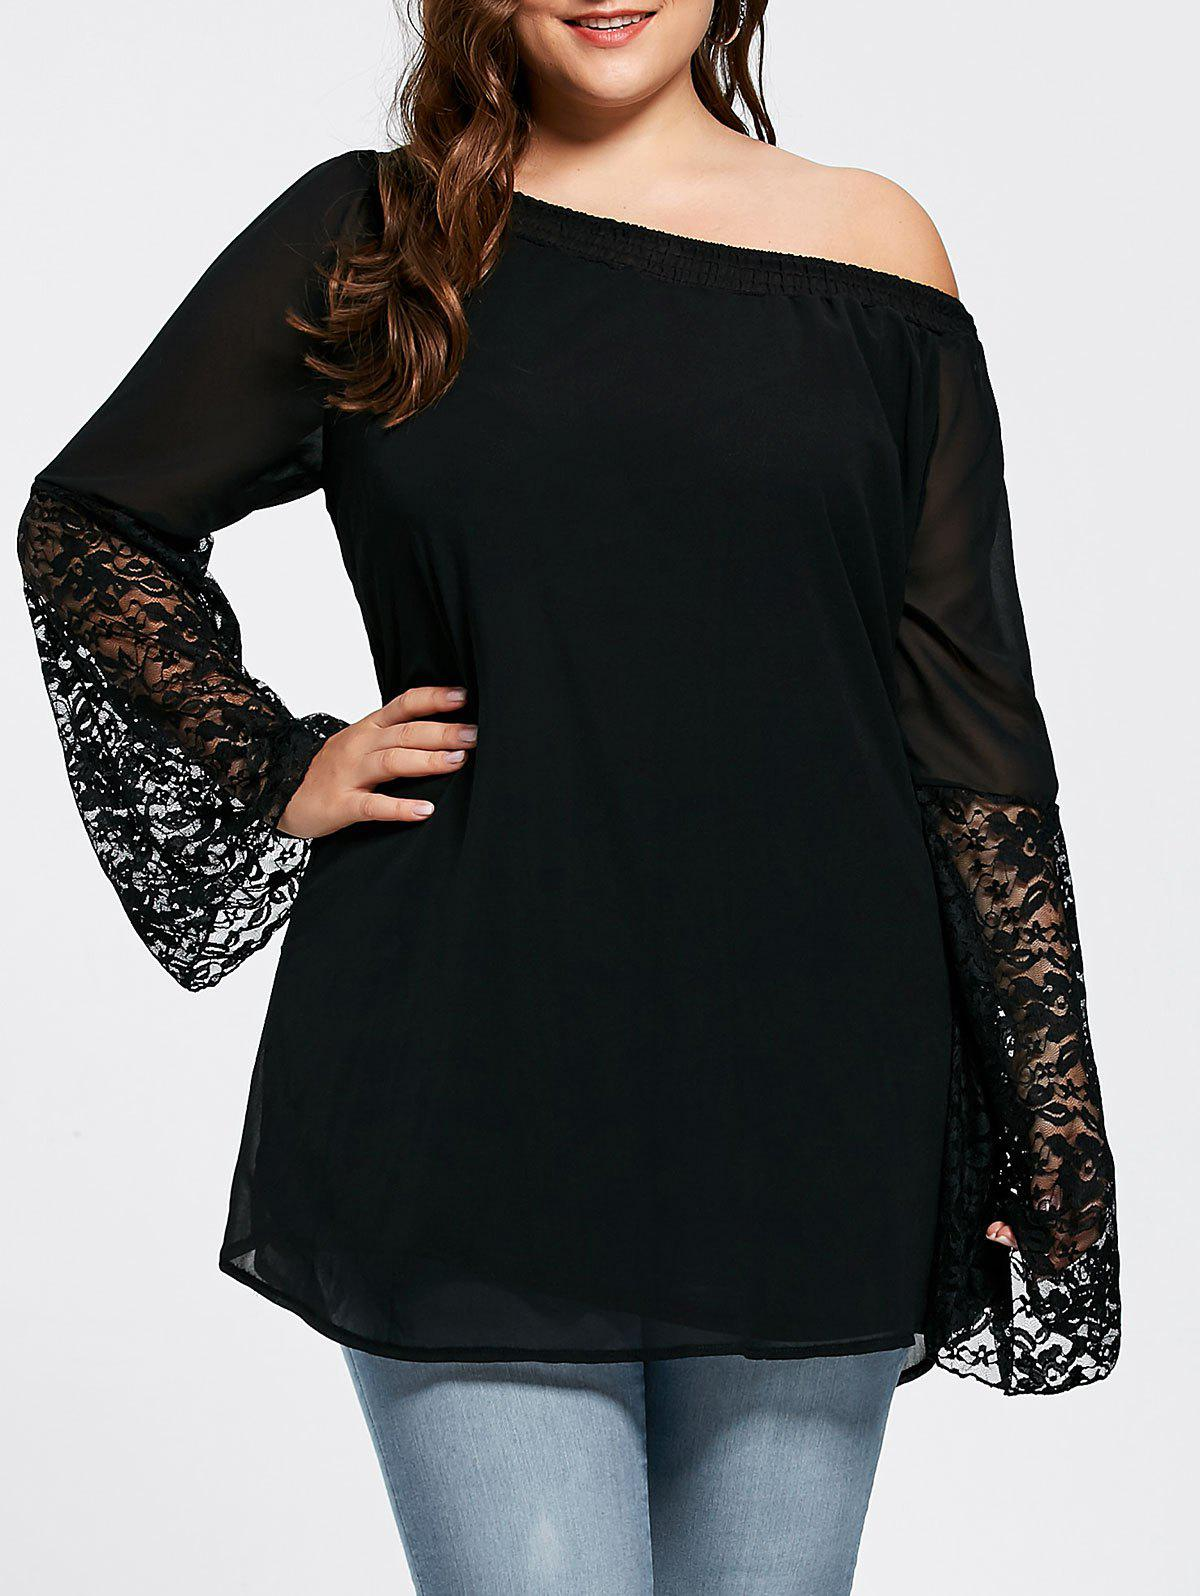 Lace Insert Bell Sleeve Plus Size Tunic Top bell sleeve lace insert mini party dress